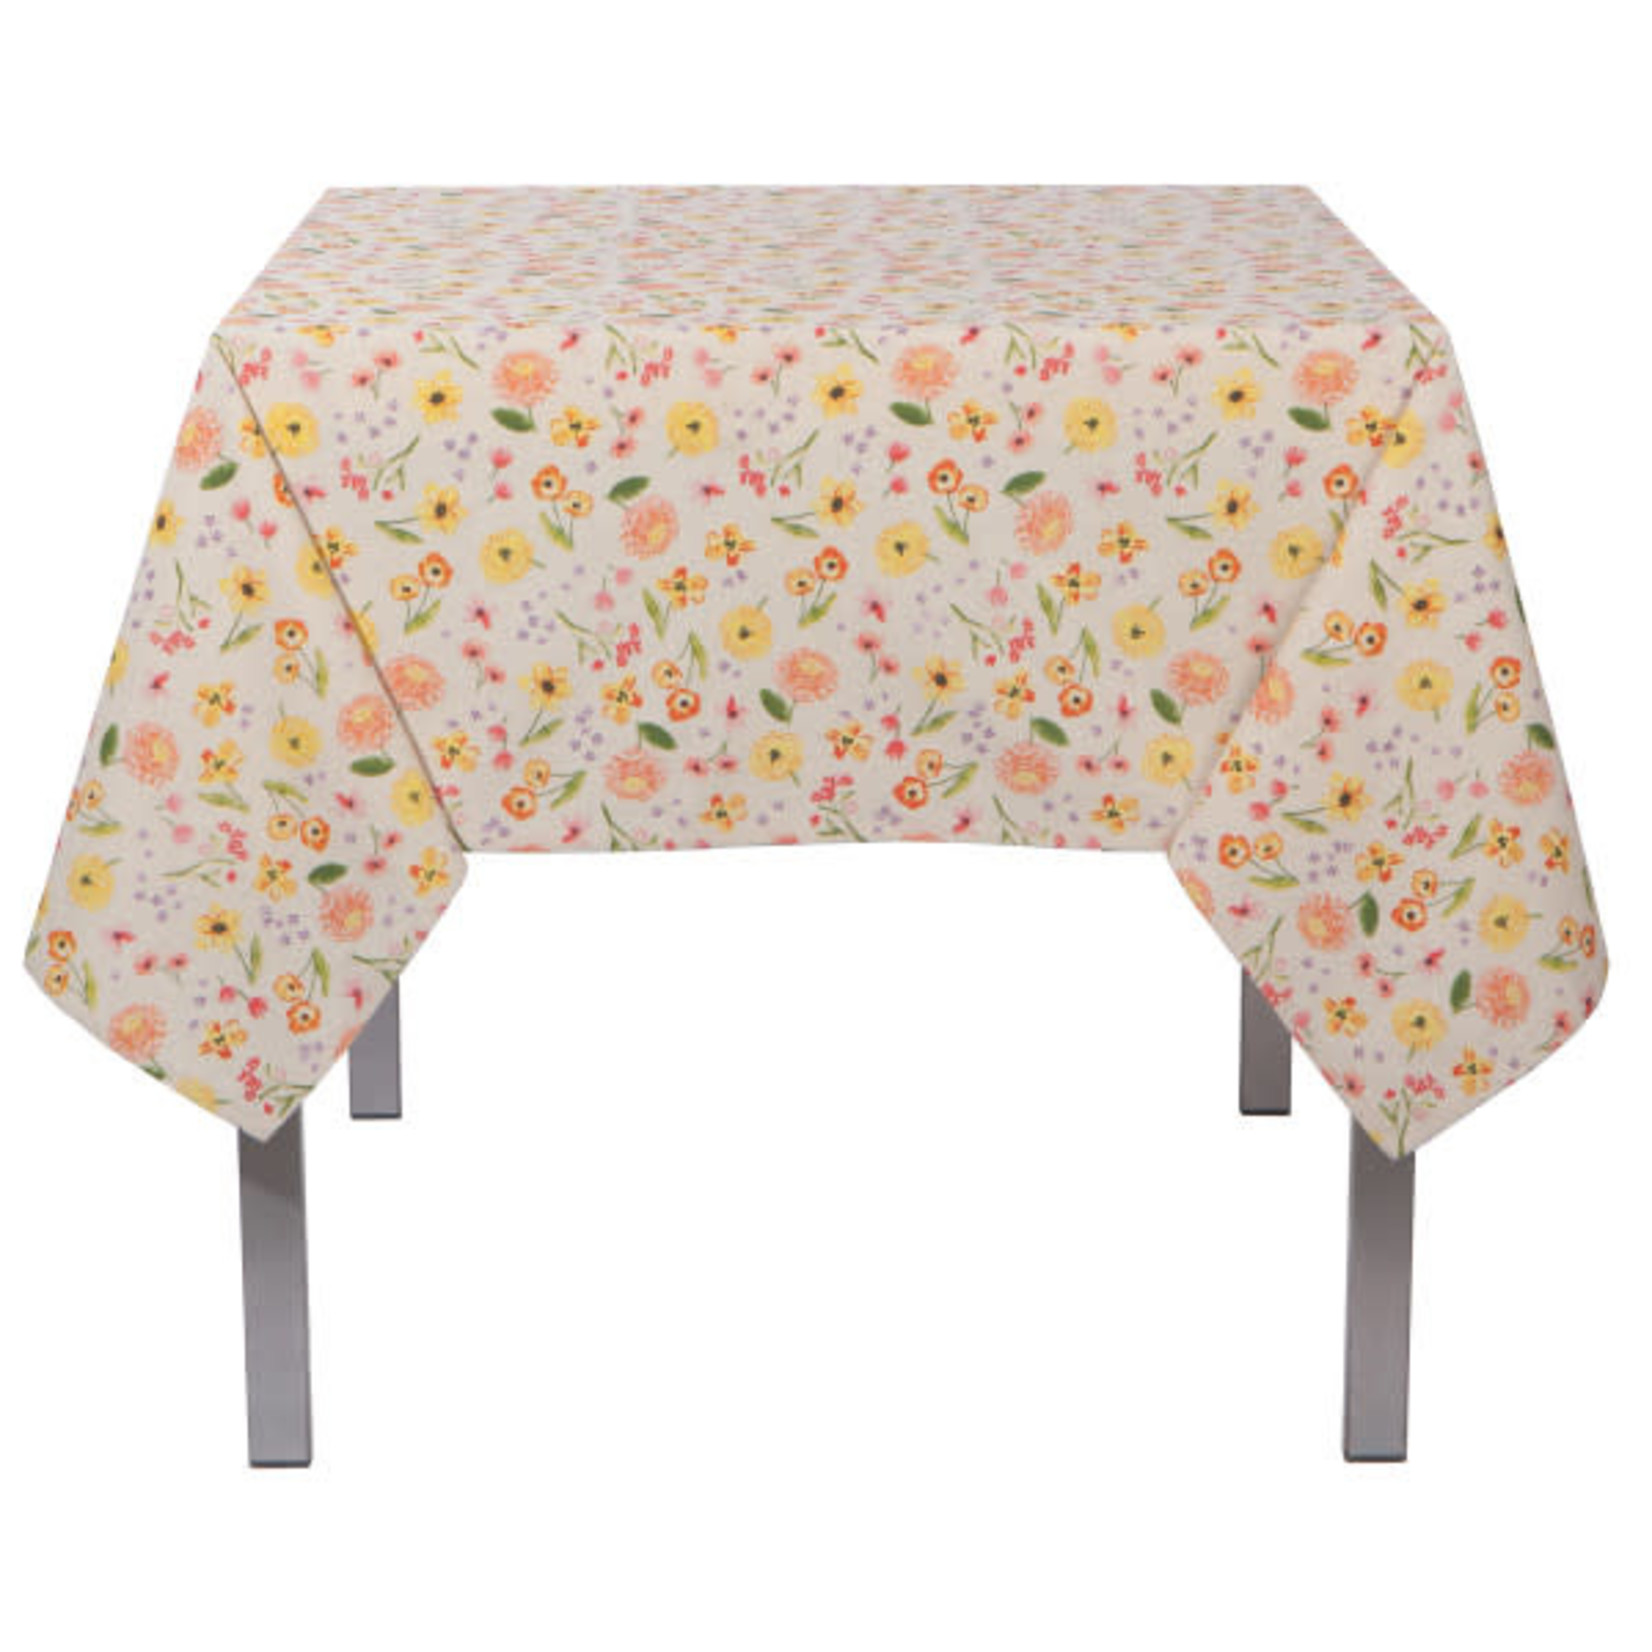 "Cottage Floral Tablecloth - 60 X 120""L"